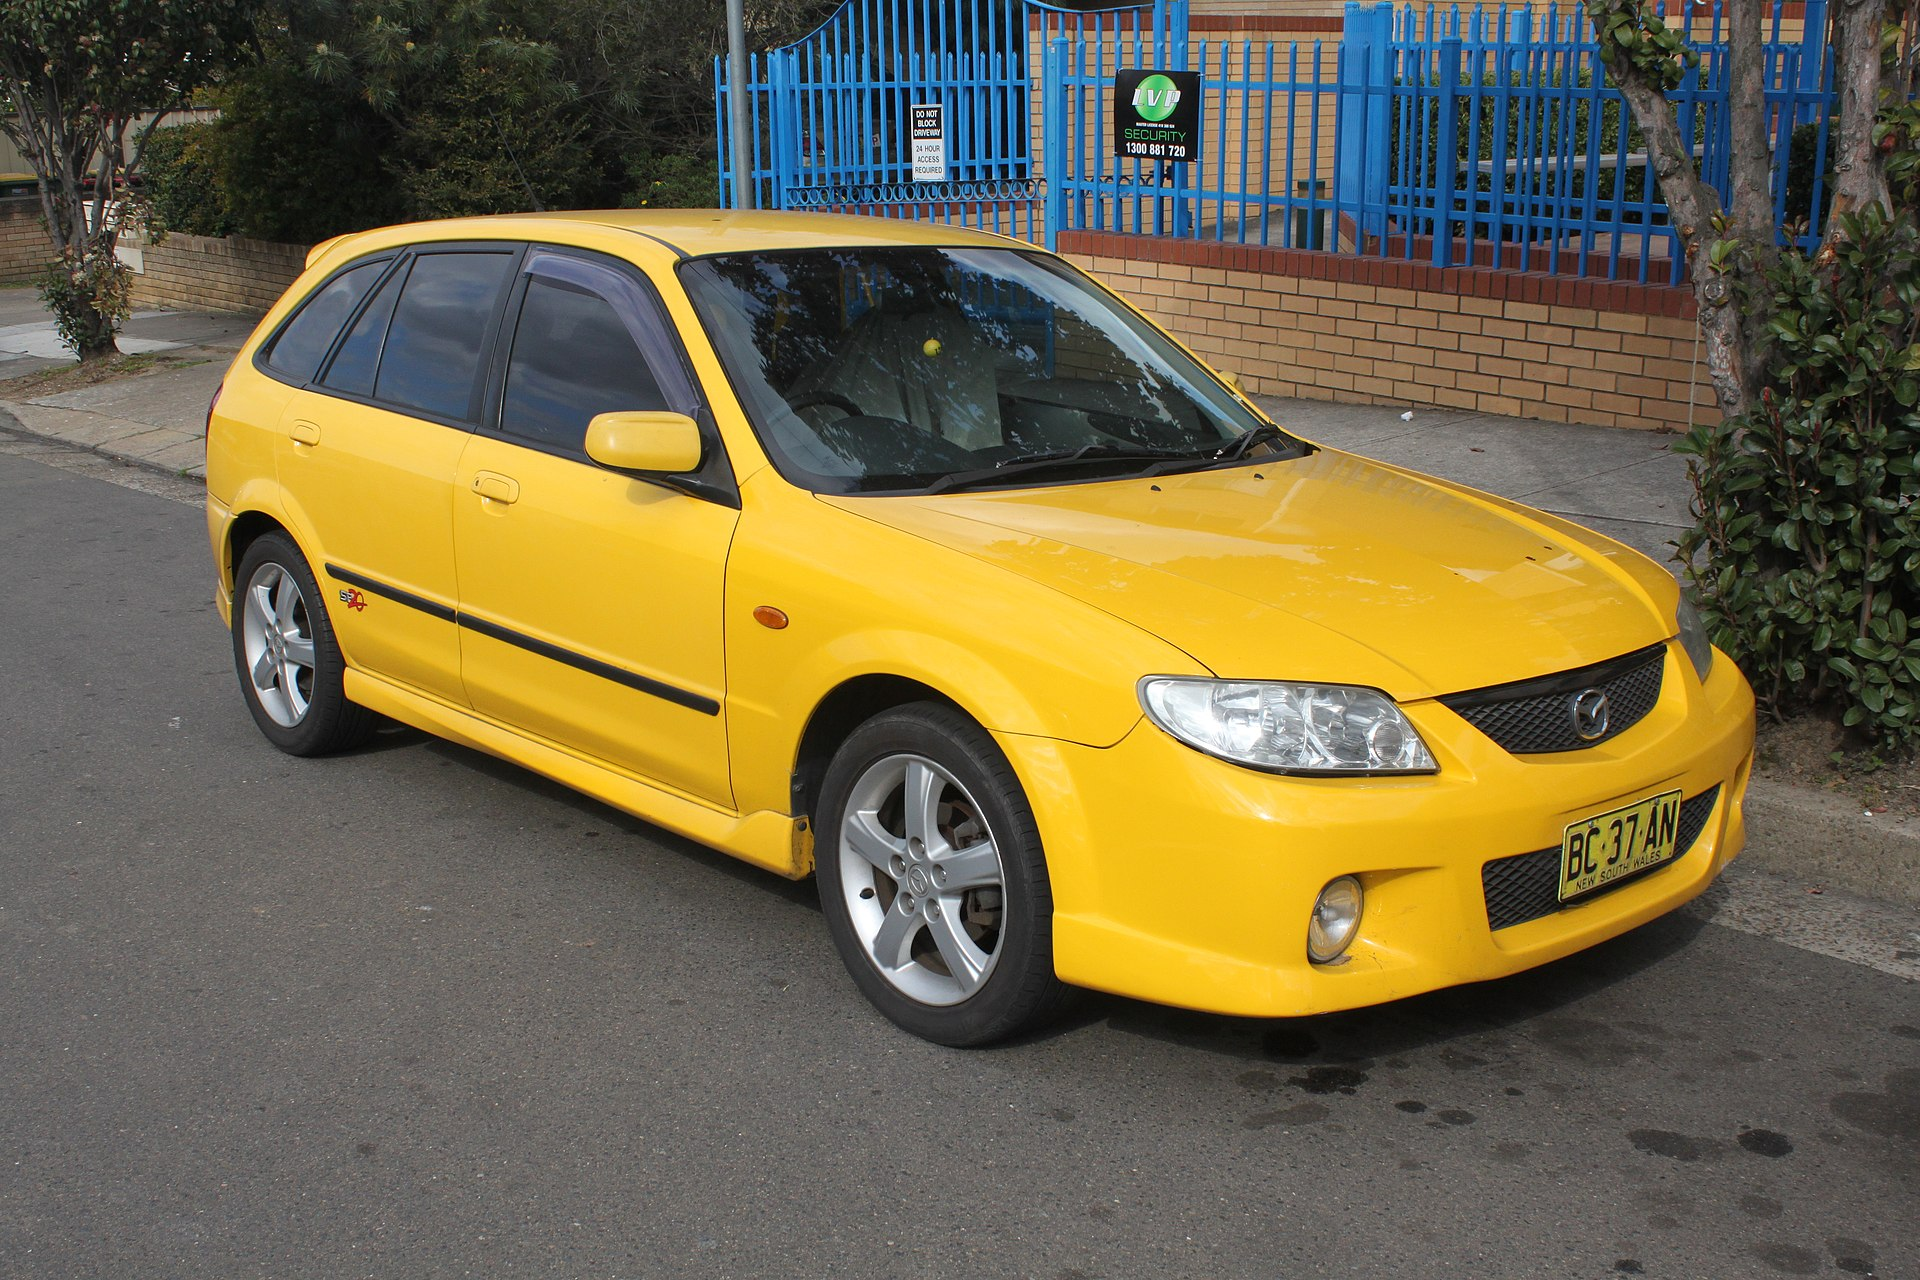 mazda astina wikipedia with Ridiculous Rebadges The Mazda 323 Fords First World 1787378320 on File 2003 Mazda 323  BJ II  Astina Shades 5 Door hatchback 01 additionally File mazda 323 hatch front moreover Images together with File 1st Ford Festiva furthermore File Mazda 323f rear 20071002.